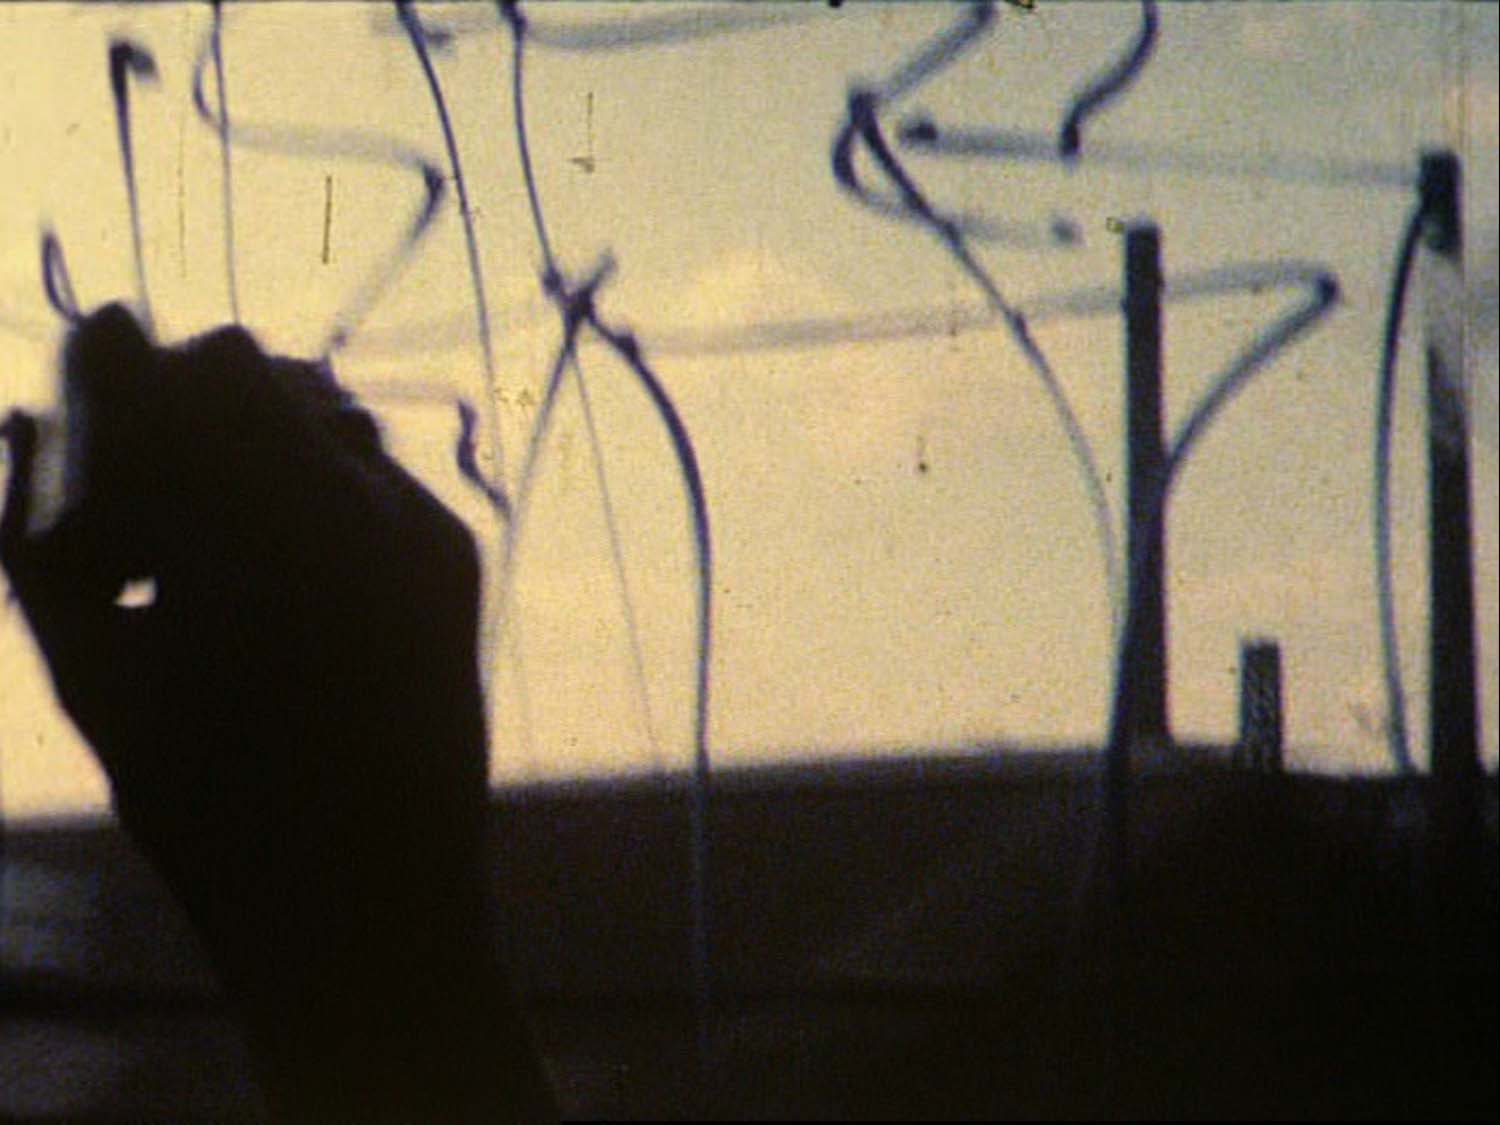 Rachel Lowe, A Letter to an Unknown Person, No. 7, 1998. Film still. Image courtesy the artist.